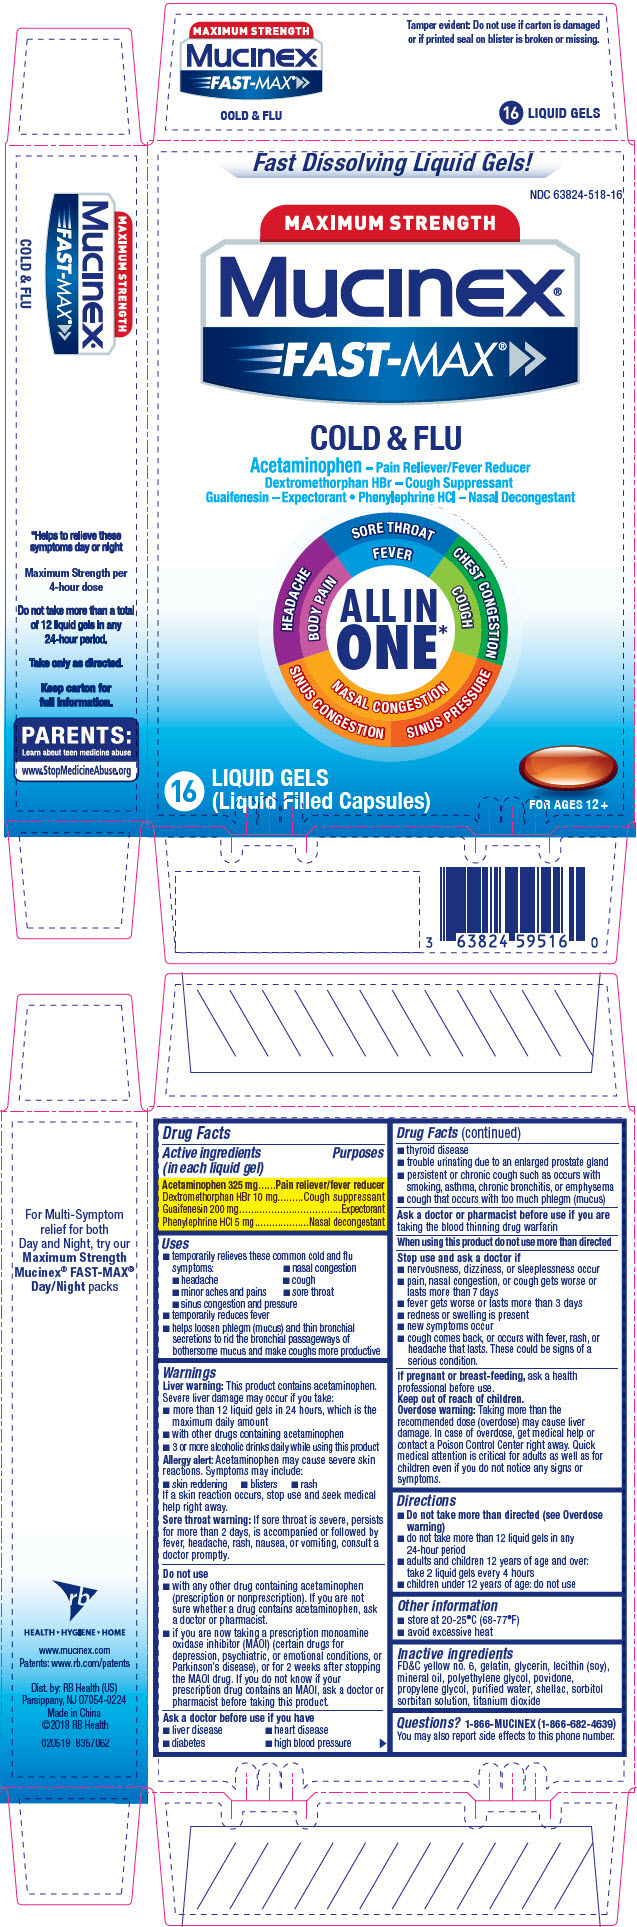 PRINCIPAL DISPLAY PANEL - 16 Liquid Gel Blister Pack Carton